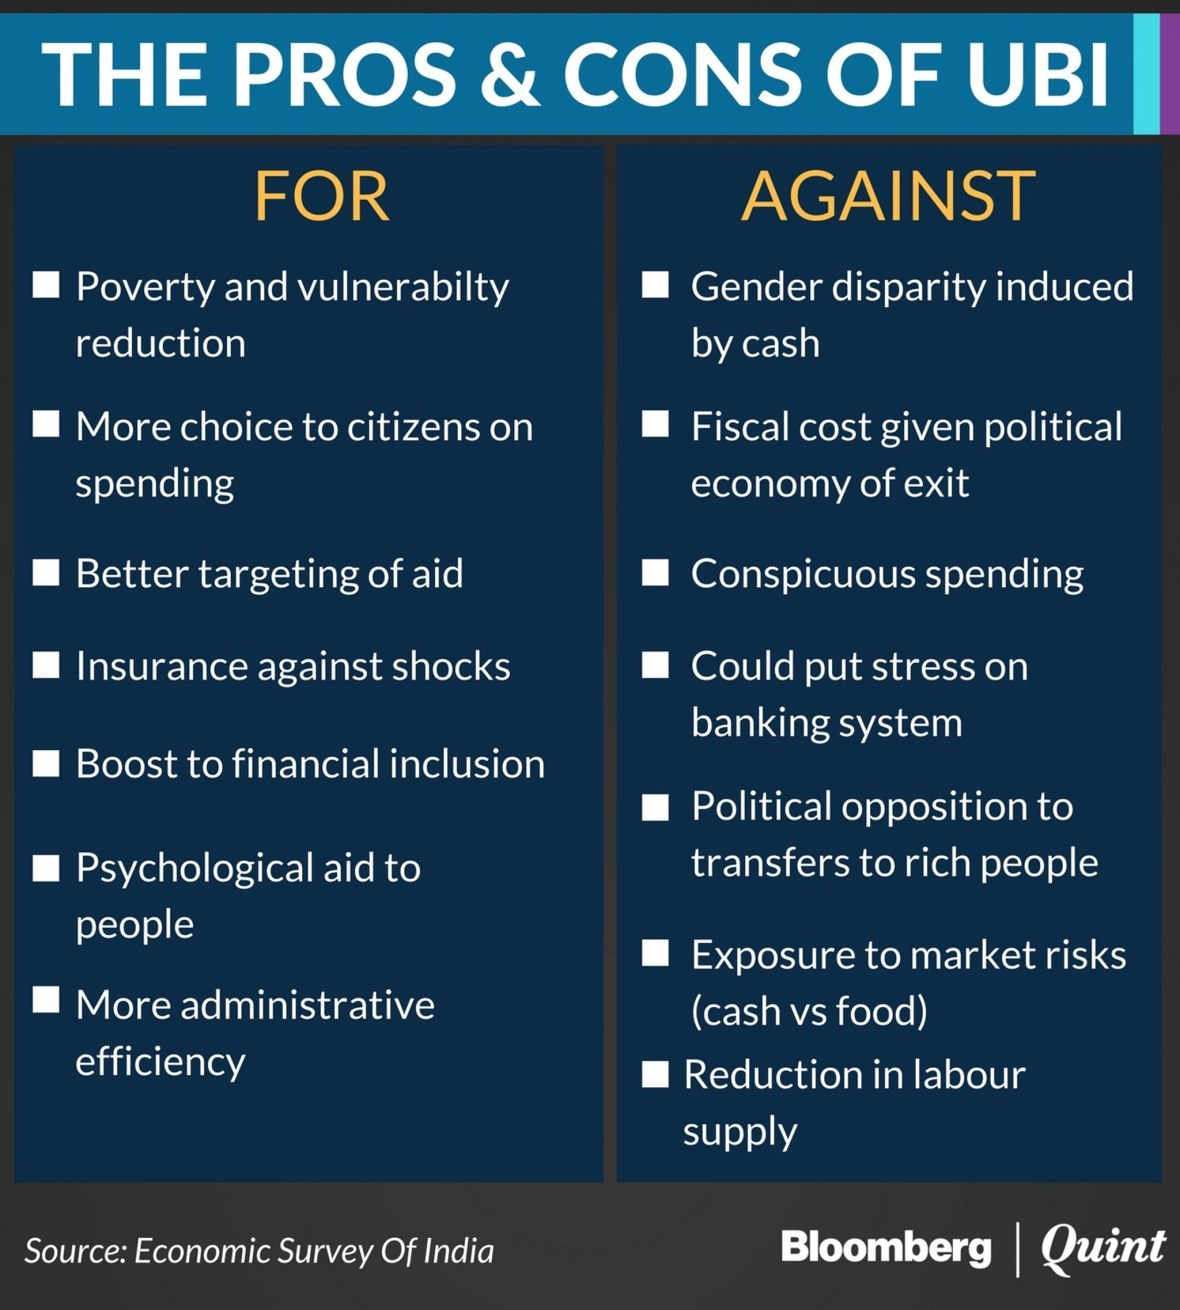 bloombergquint2f2017-012f6cf8b346-e85d-4b47-9c65-1ac5bef869812fhed-assessing-pros-and-cons-of-ubi-1